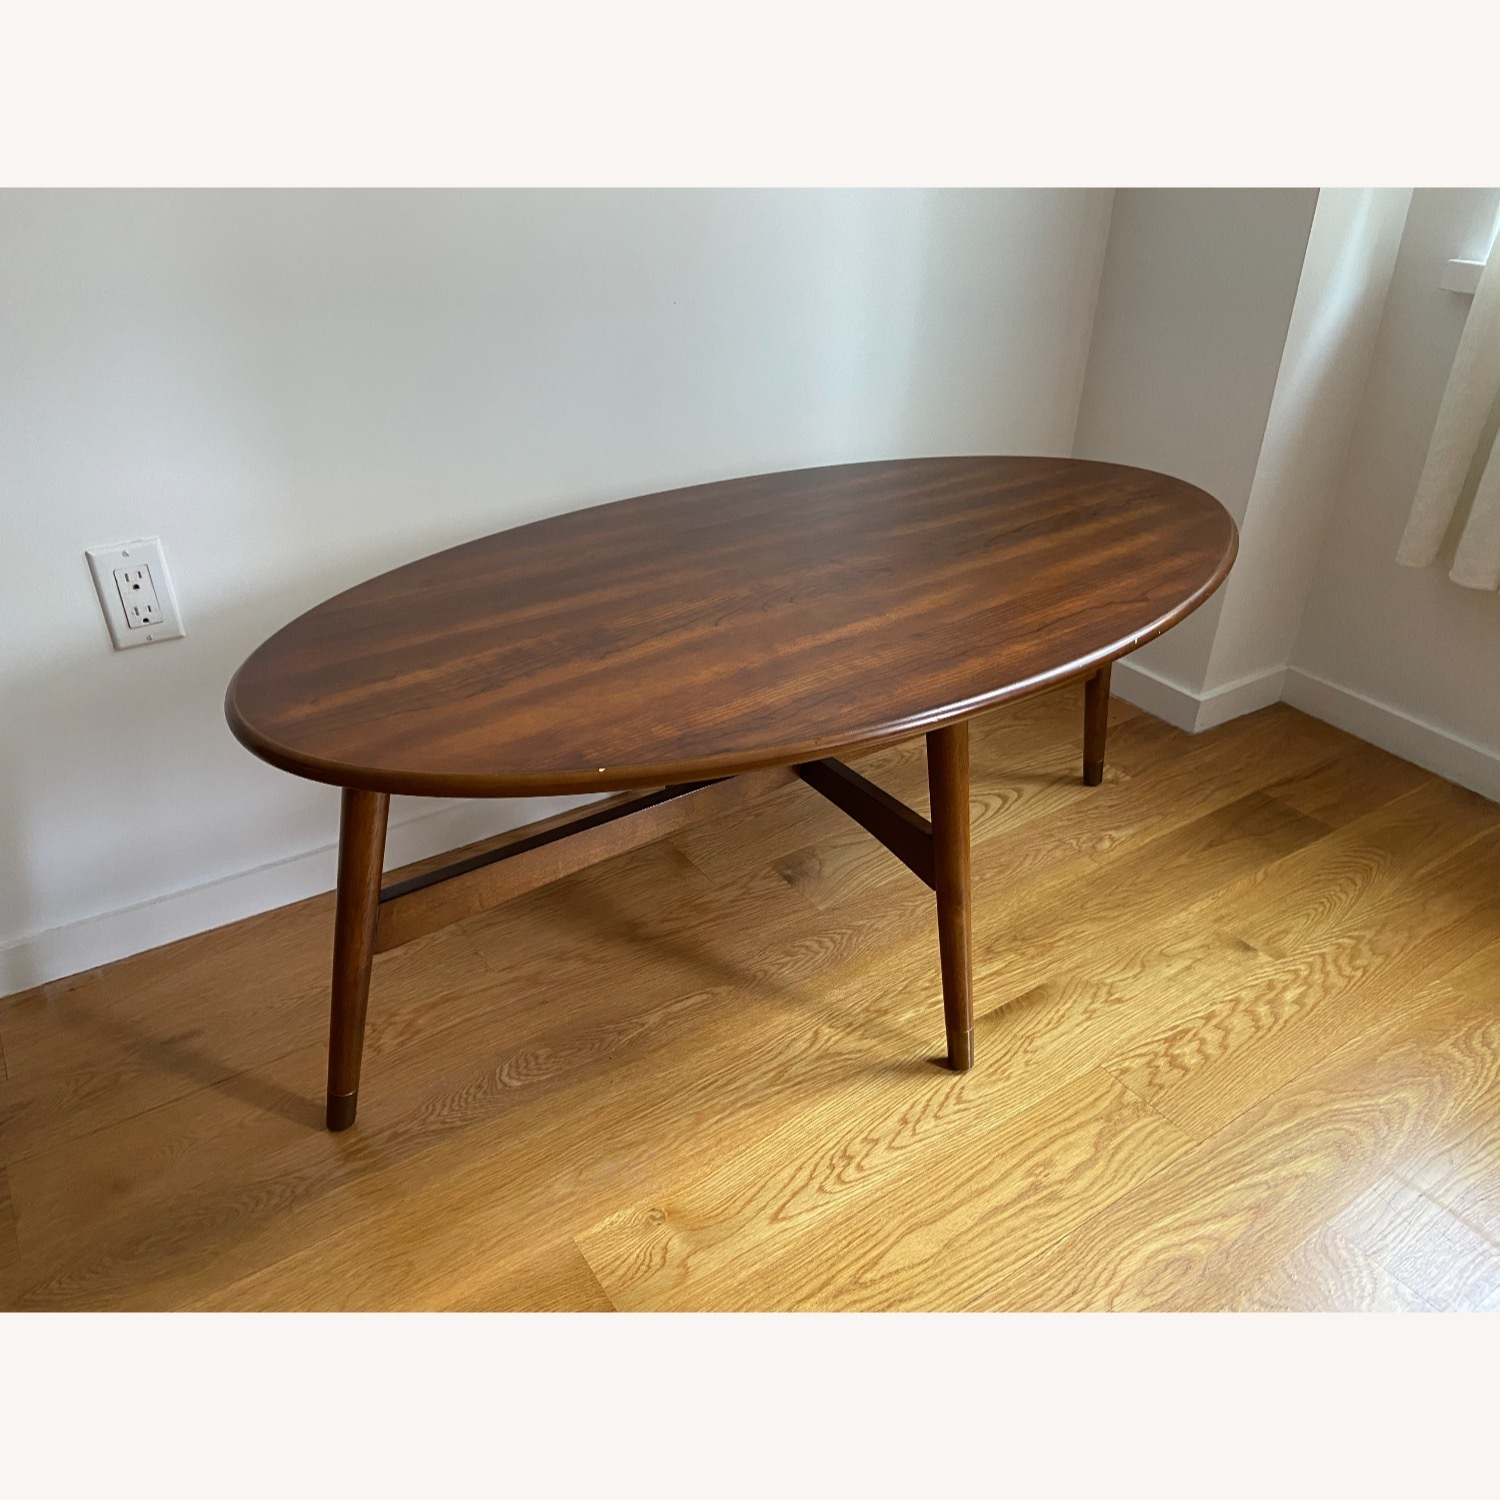 Pier 1 Coffee Table - image-5